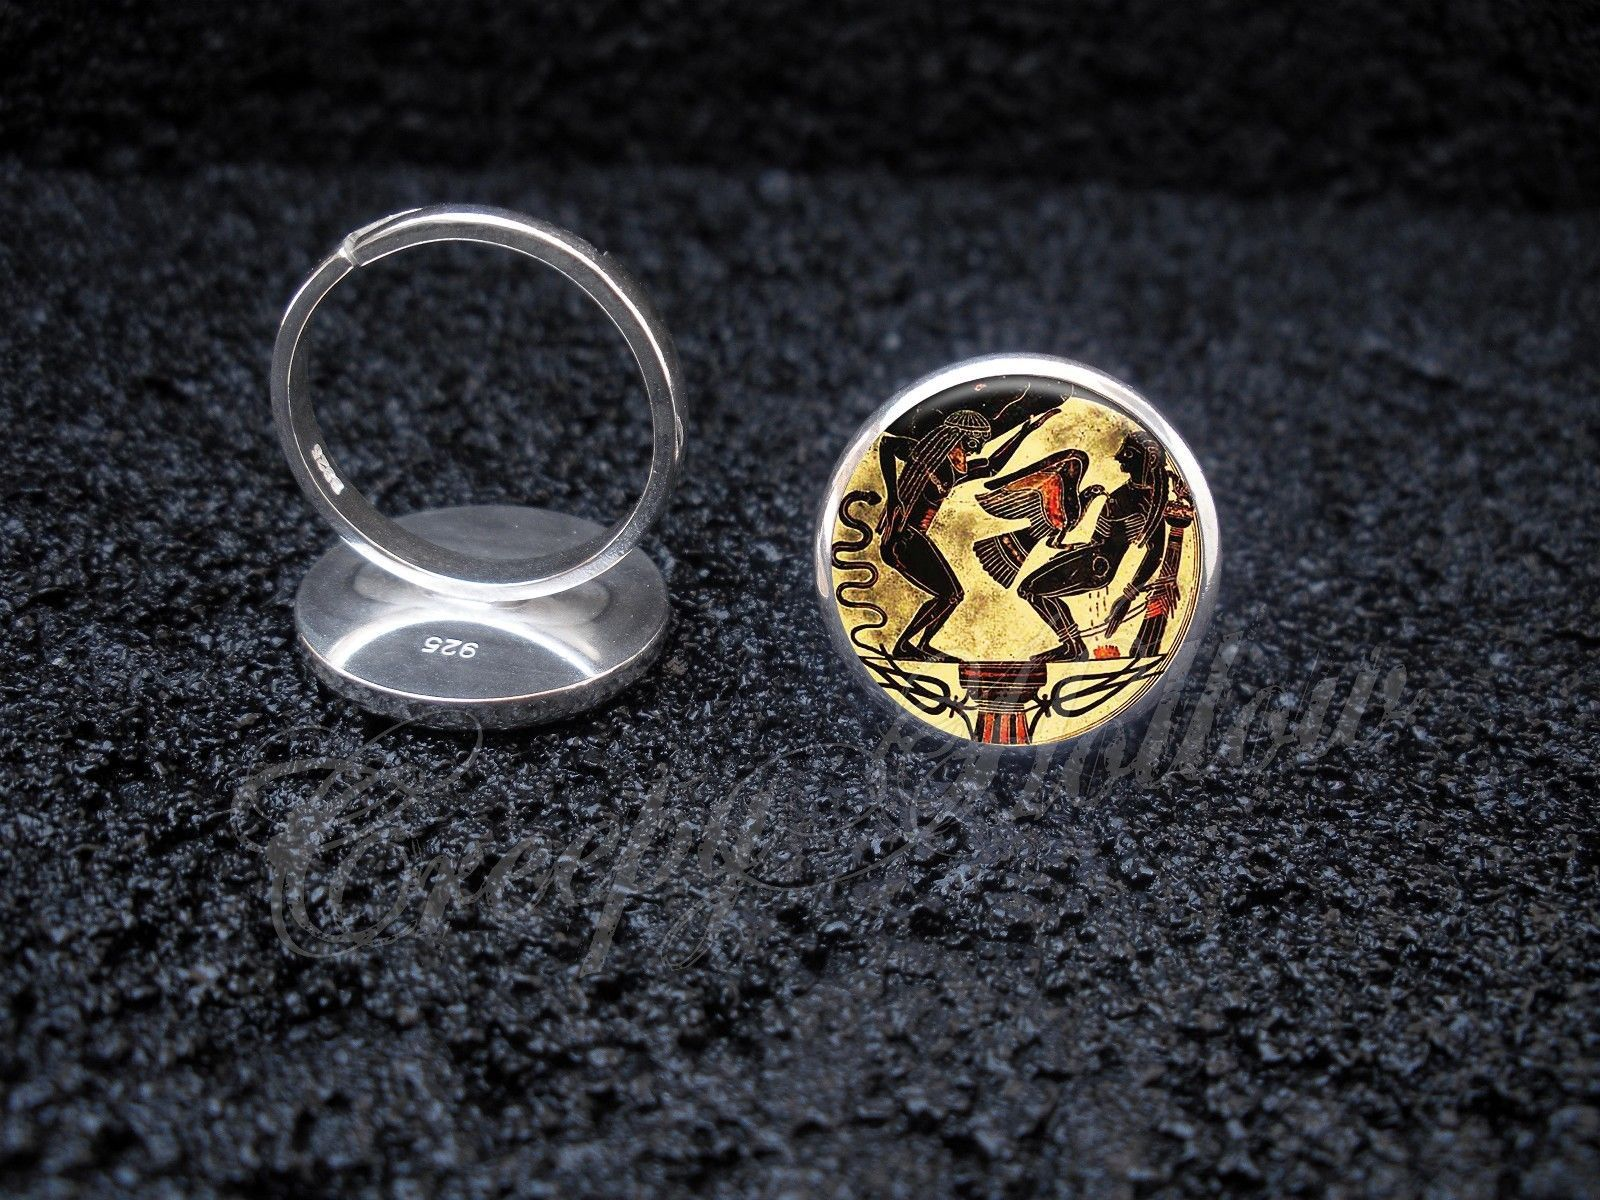 Primary image for 925 Sterling Silver Adjustable Ring Greek Mythology Prometheus Liver Eaten